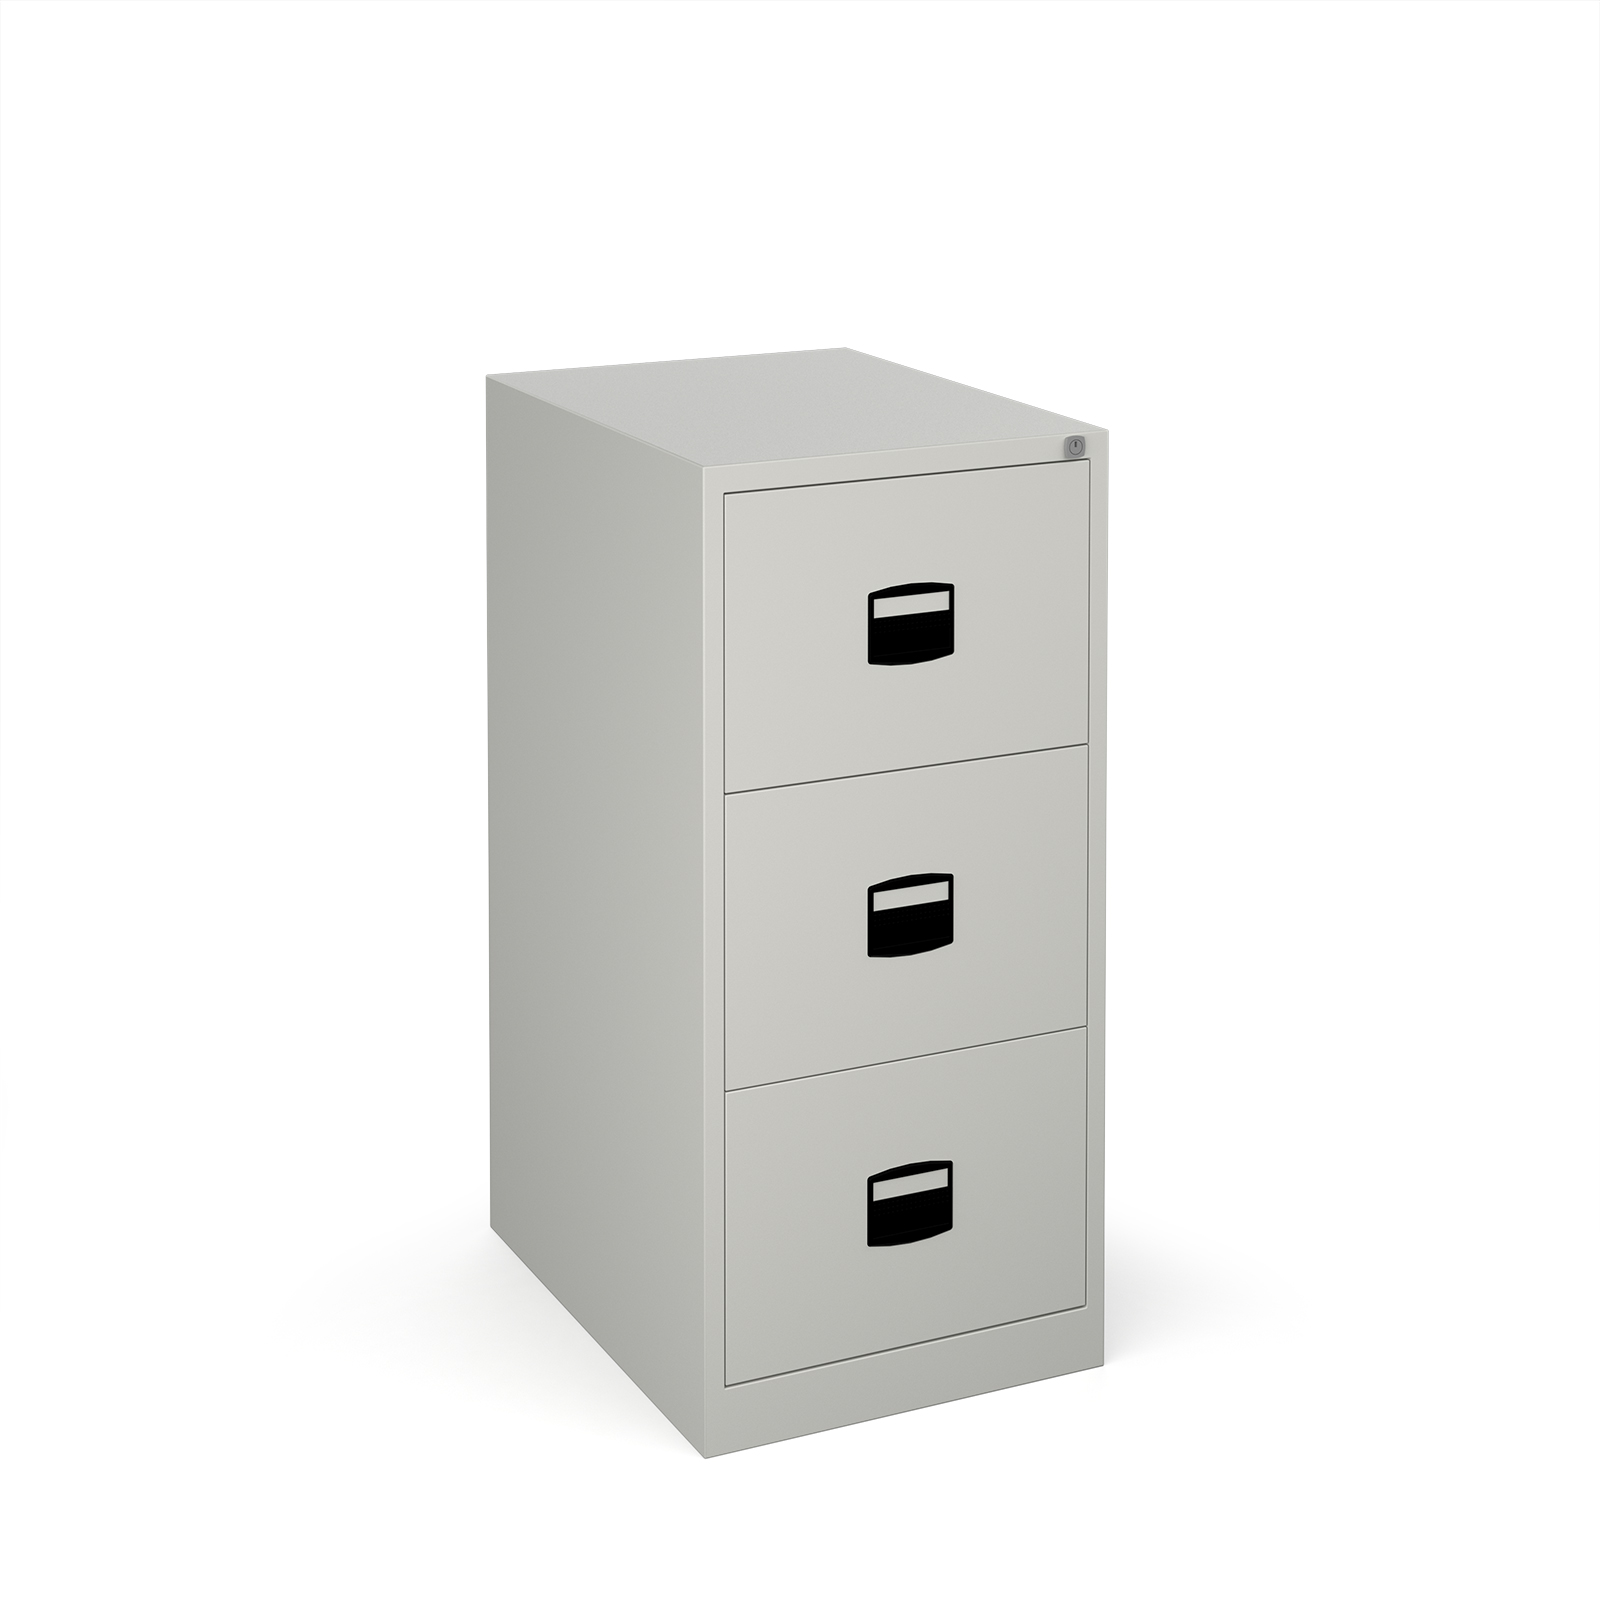 Steel 3 drawer contract filing cabinet 1016mm high - goose grey